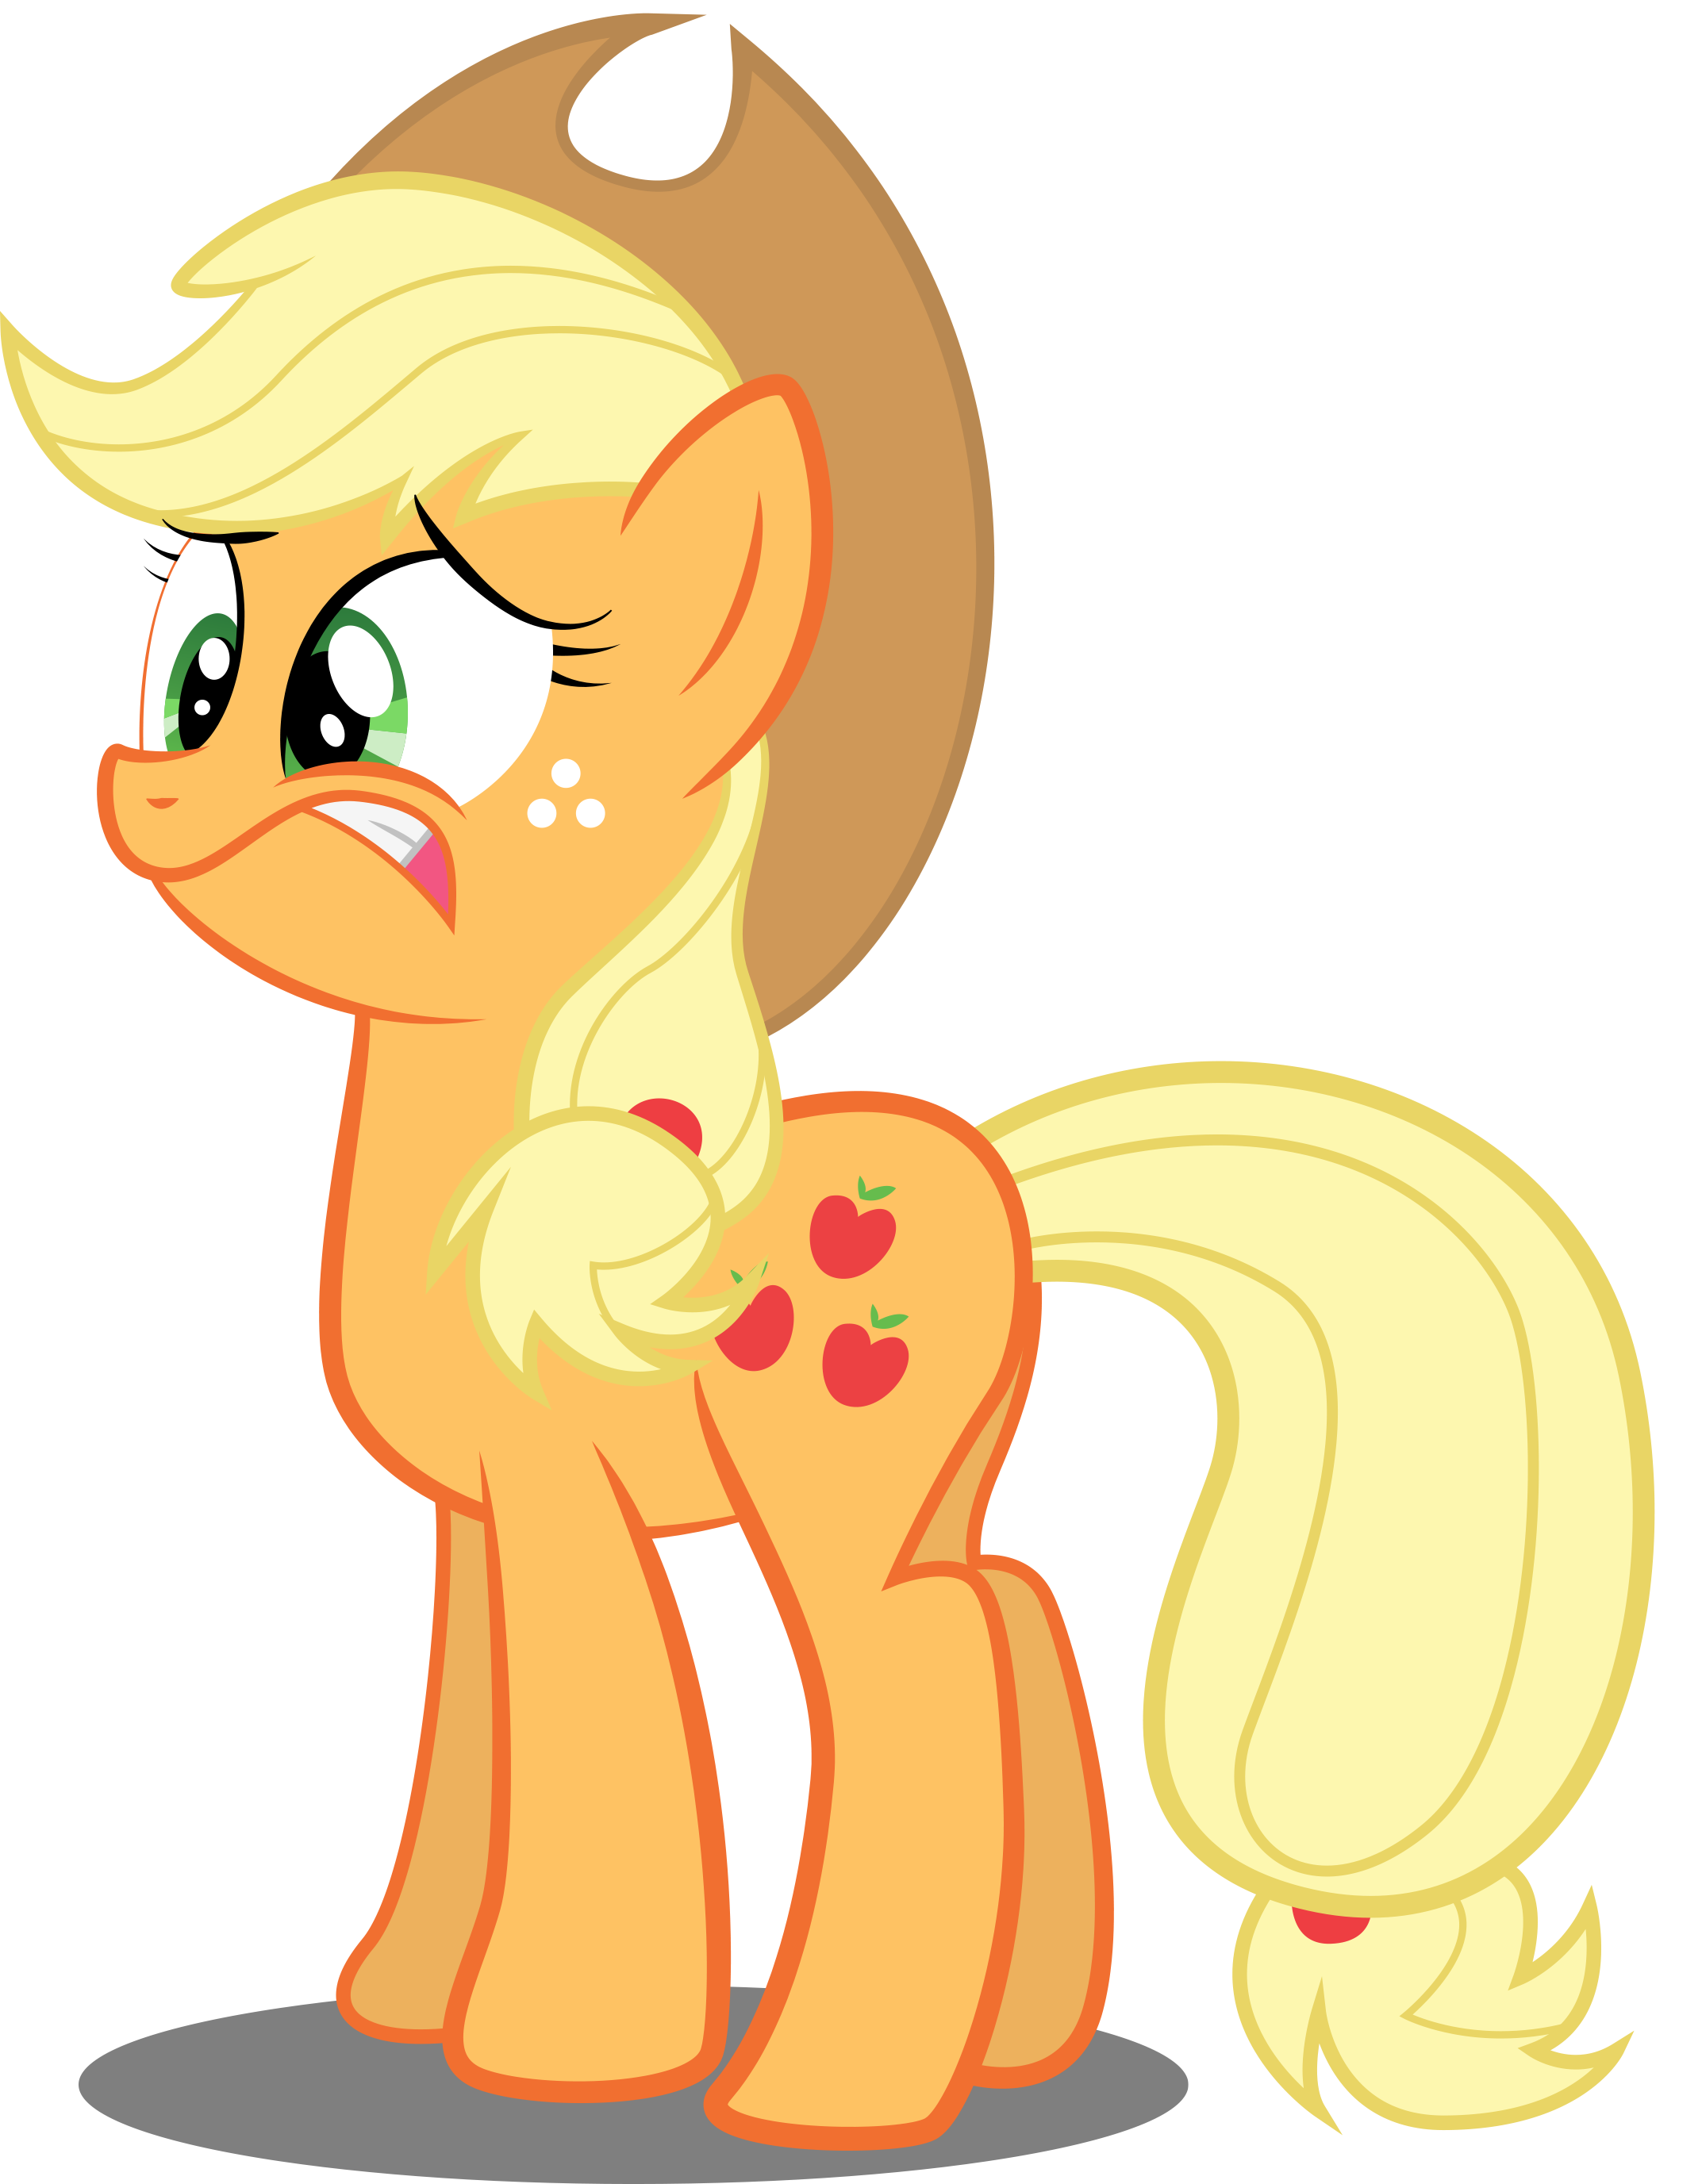 Applejack is Frightened by SpellboundCanvas